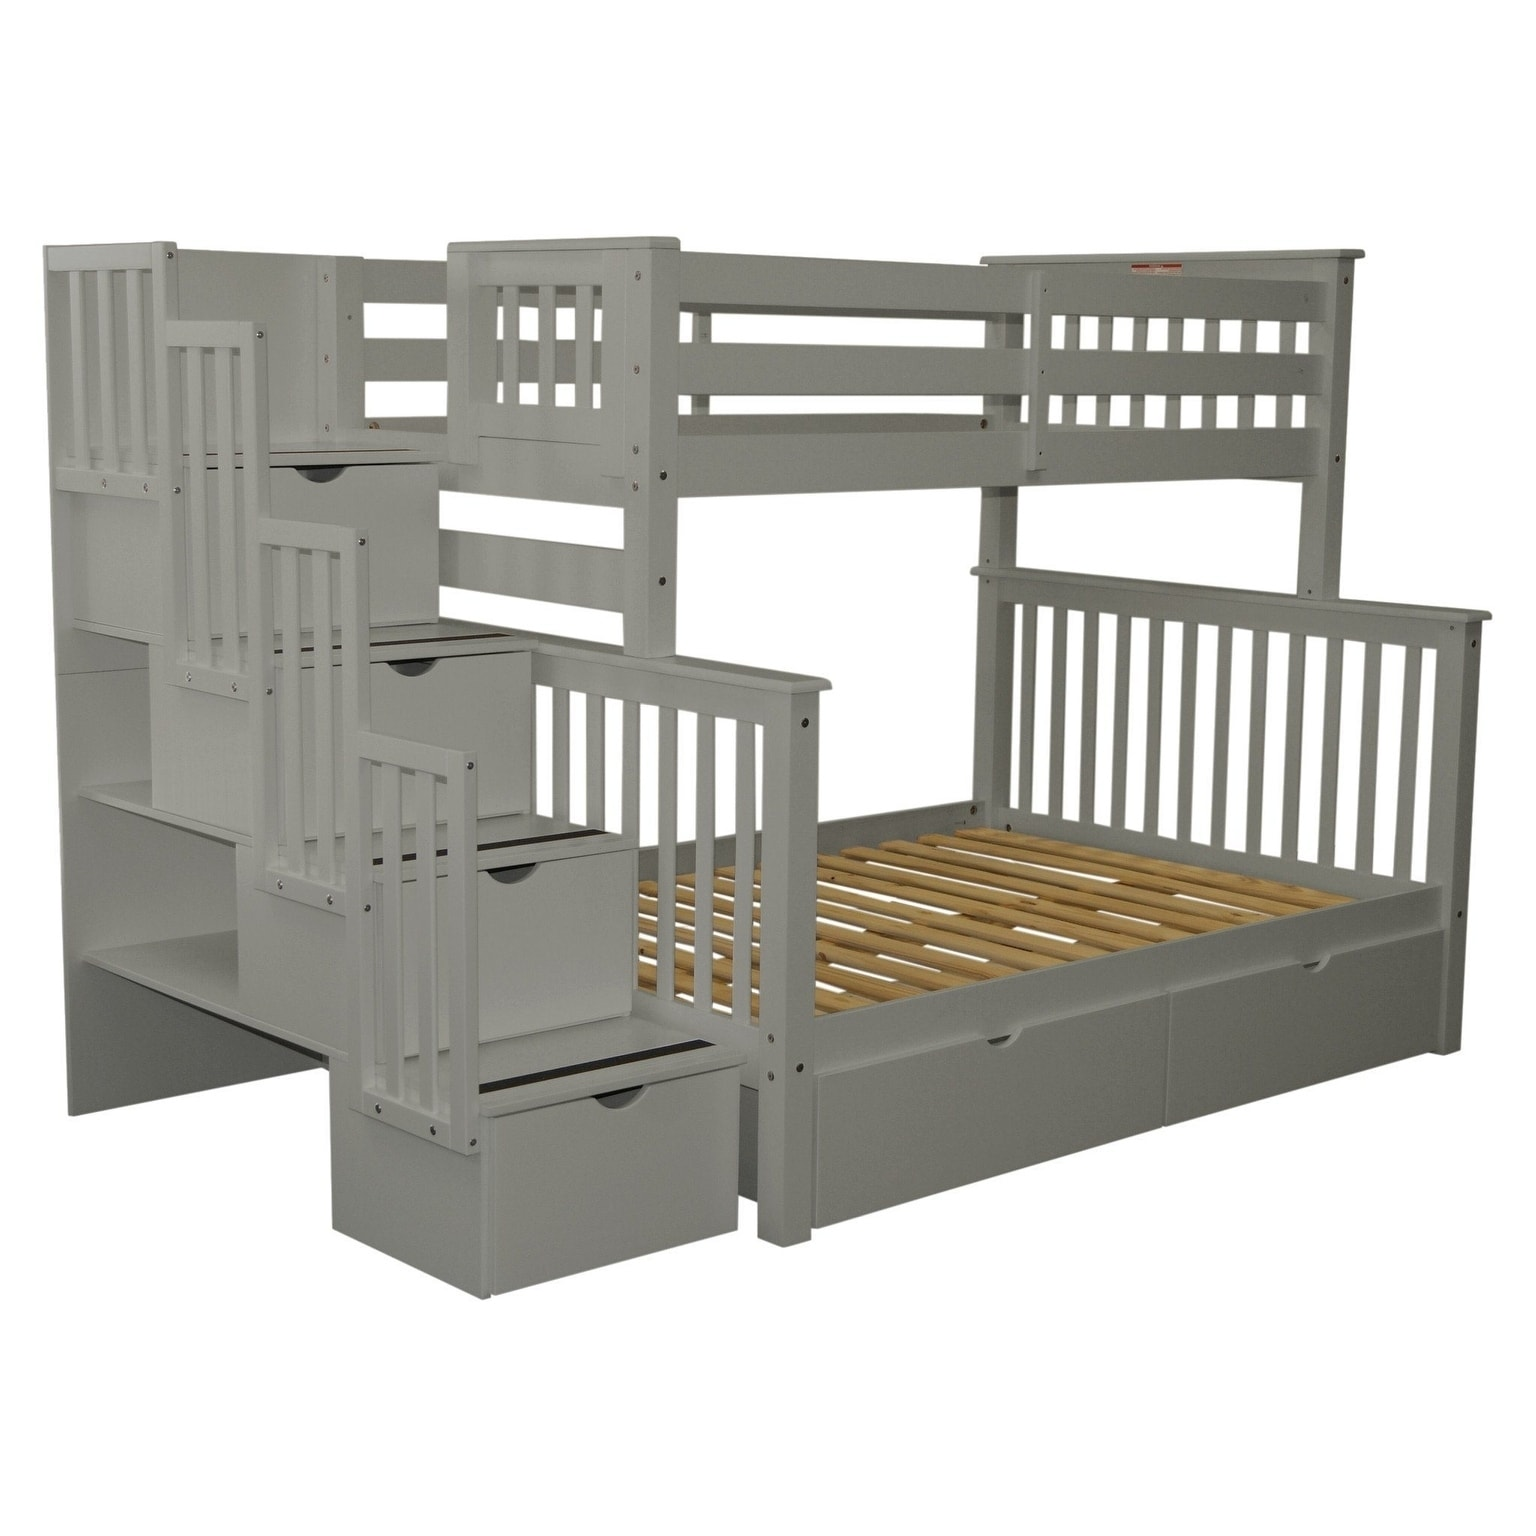 Shop Bedz King Grey Wood Stairway Twin Over Full With 4 Drawers In The  Steps And 2 Under Bed Drawers Bunk Bed   Free Shipping Today    Overstock.com   ...